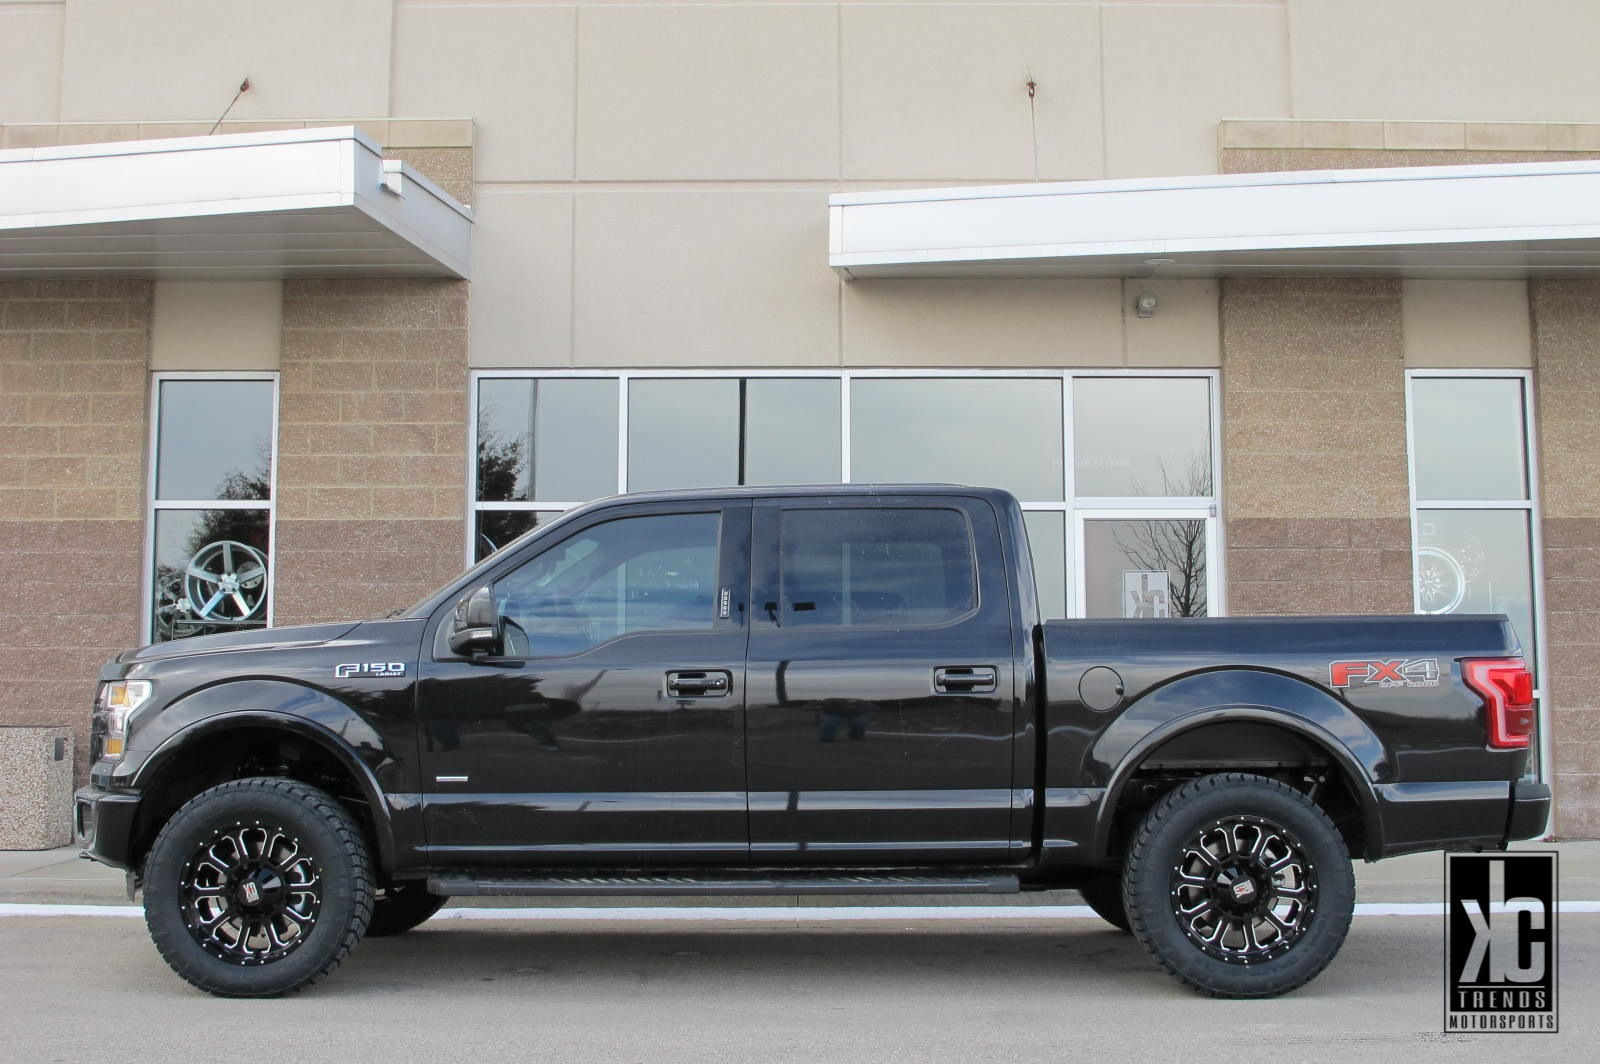 Lifted Ford F150 >> 2015 F150 Strictly Pics Thread - Page 224 - Ford F150 Forum - Community of Ford Truck Fans